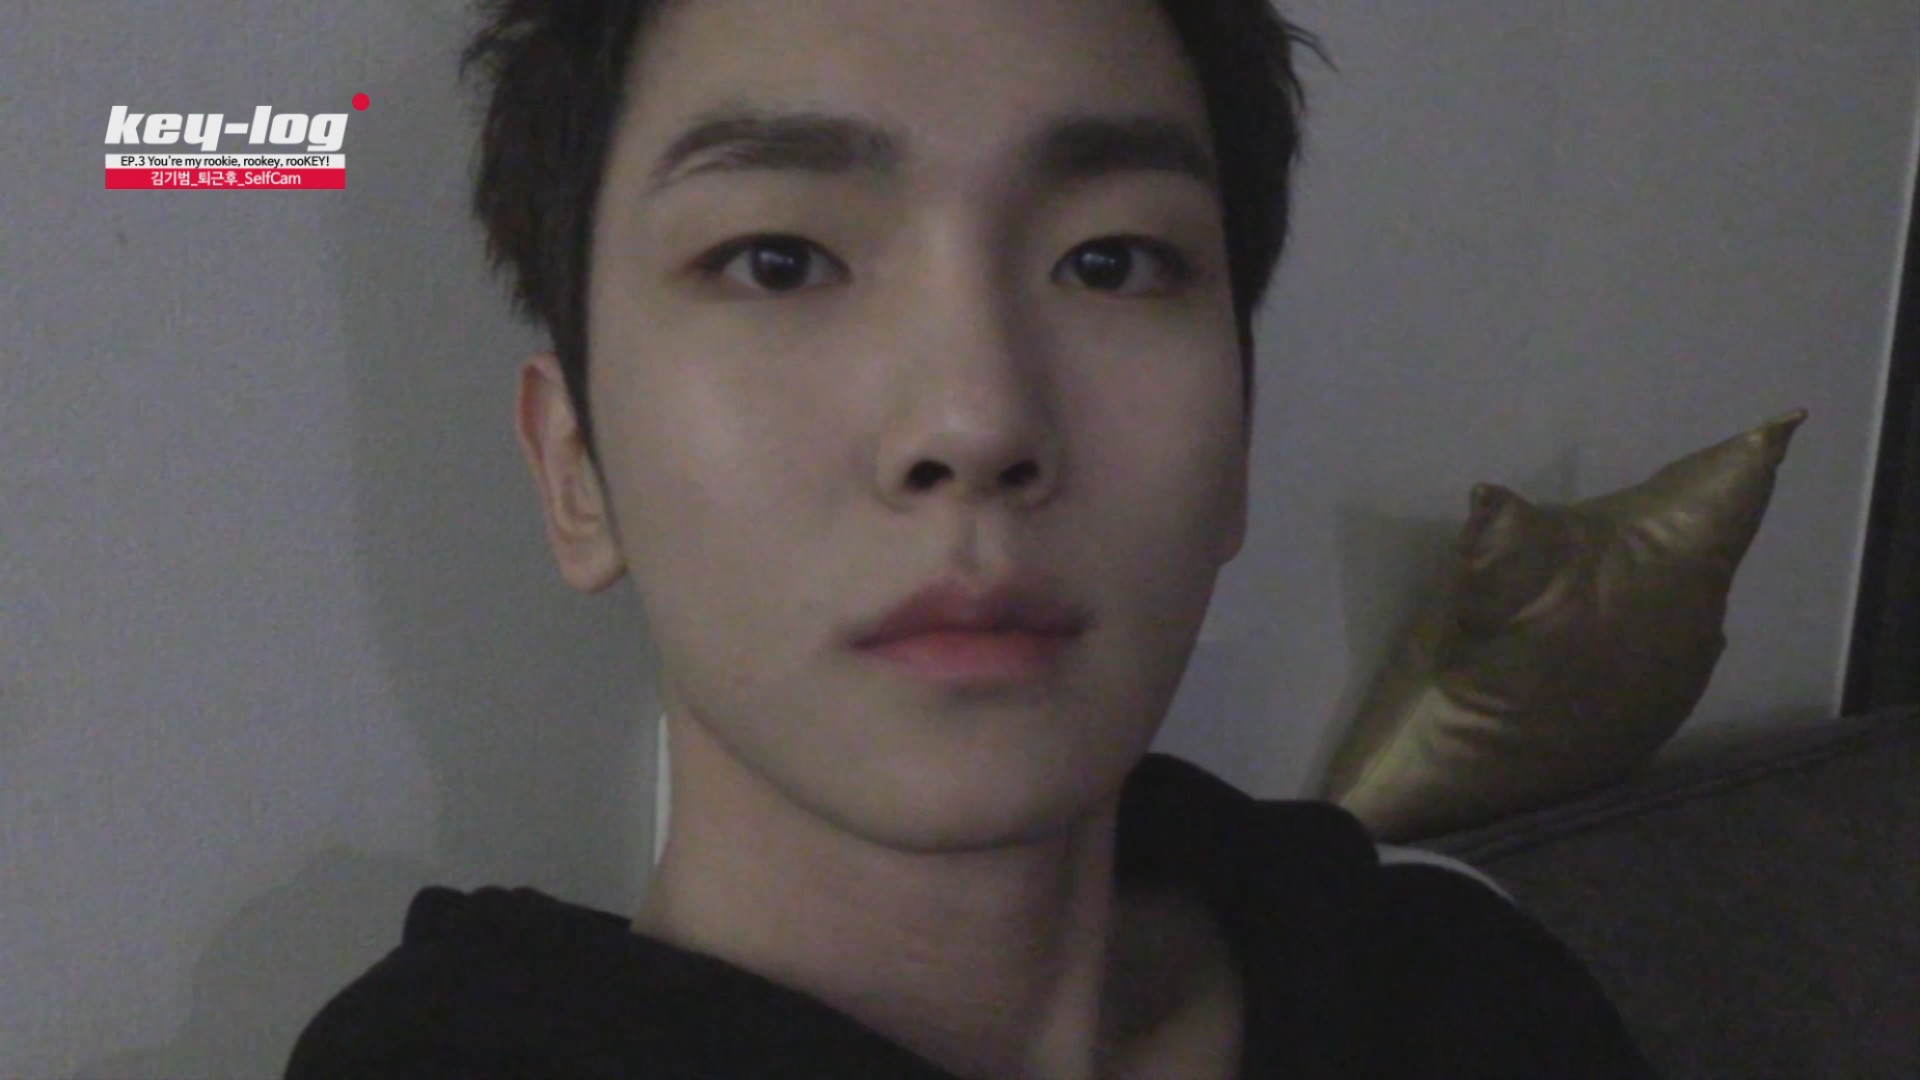 Key-log 〈 EP3. You're my rookie, rookey, rooKEY! 〉